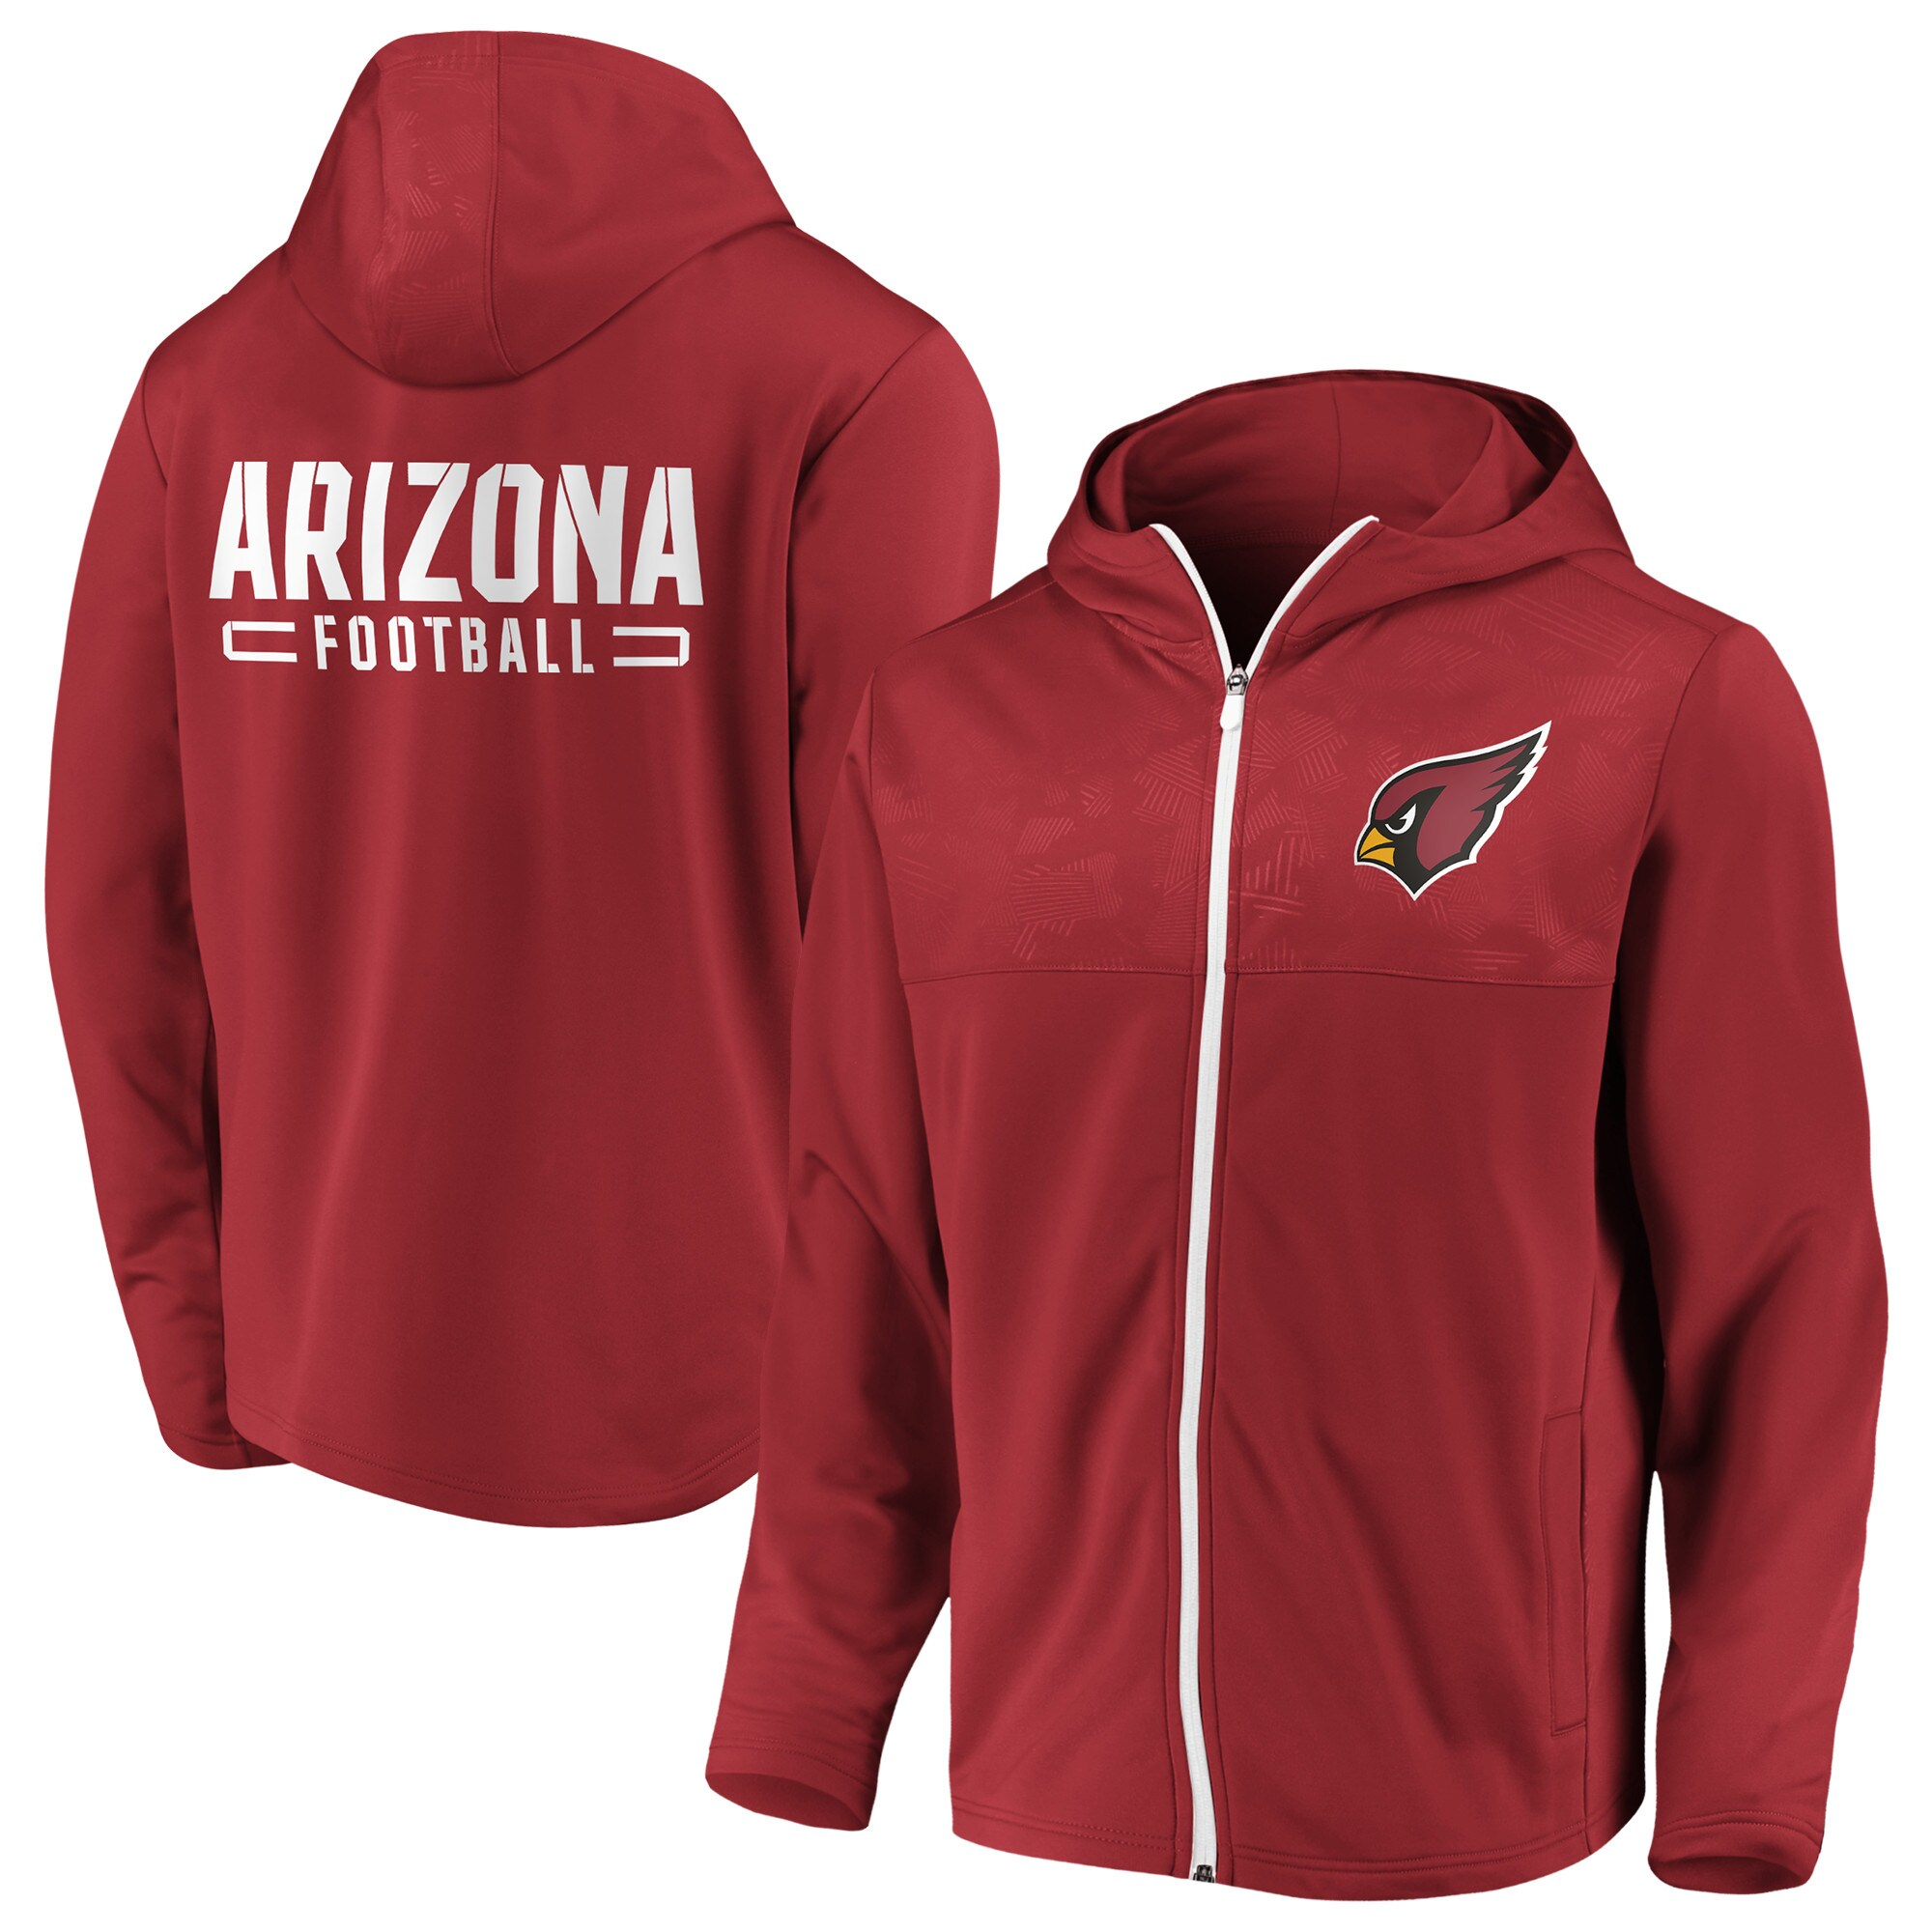 Arizona Cardinals NFL Pro Line by Fanatics Branded Iconic Defender Mission Primary Full-Zip Hoodie - Cardinal